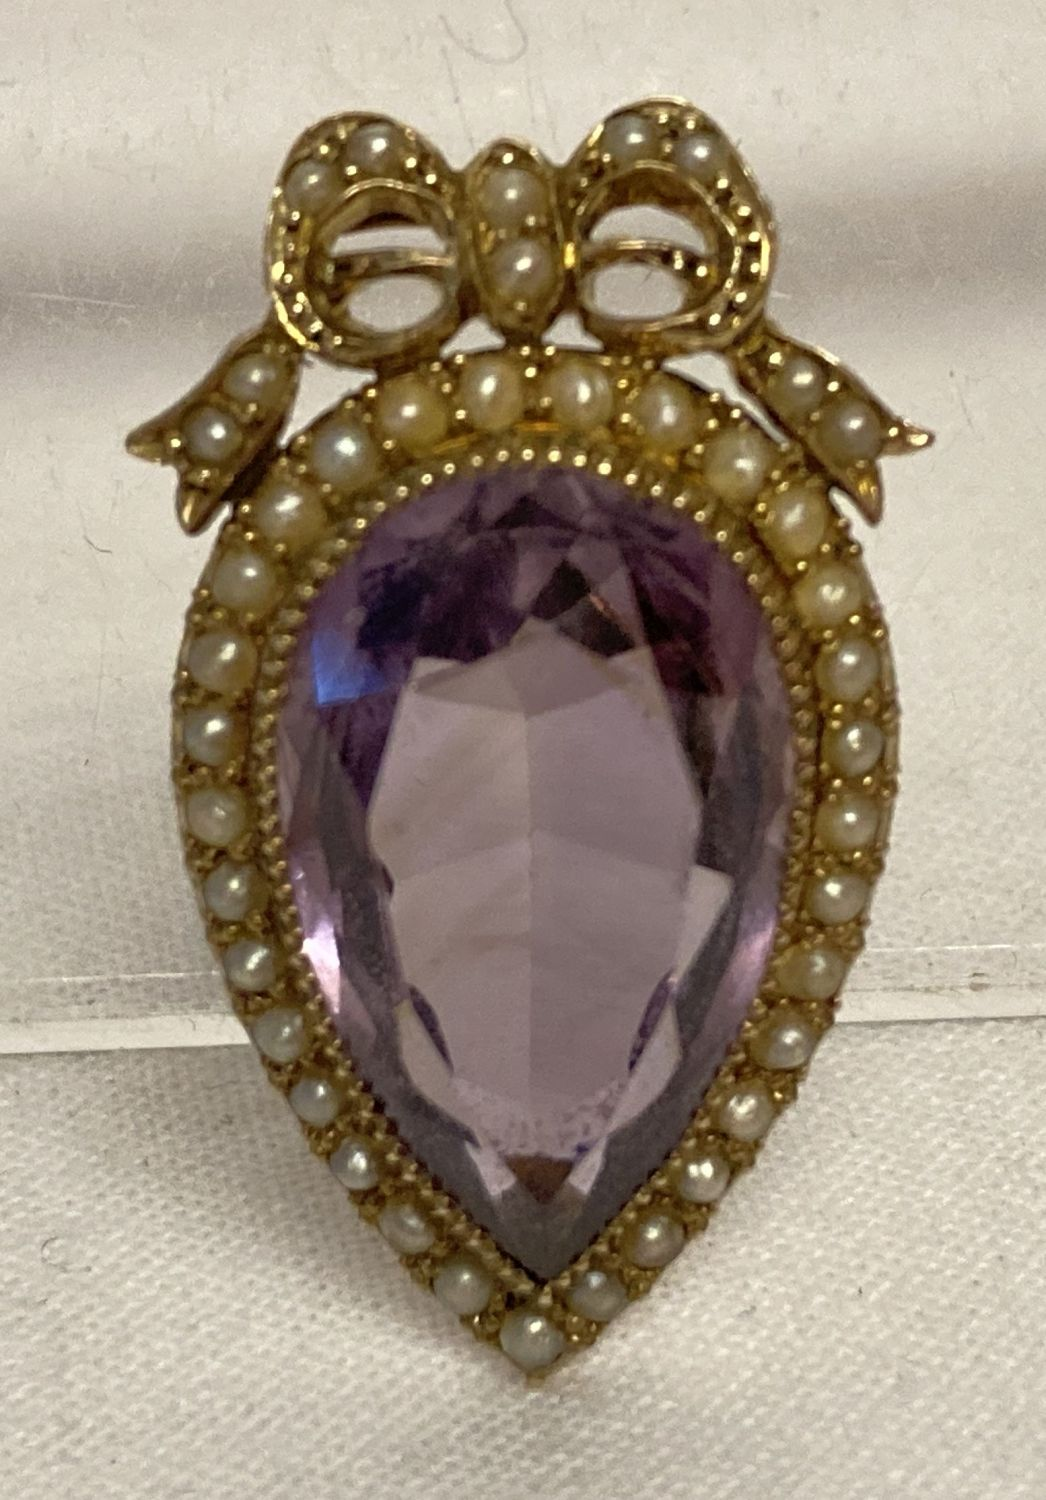 A Victorian pendant brooch, tests as 14ct gold, set with central teardrop shaped amethyst.